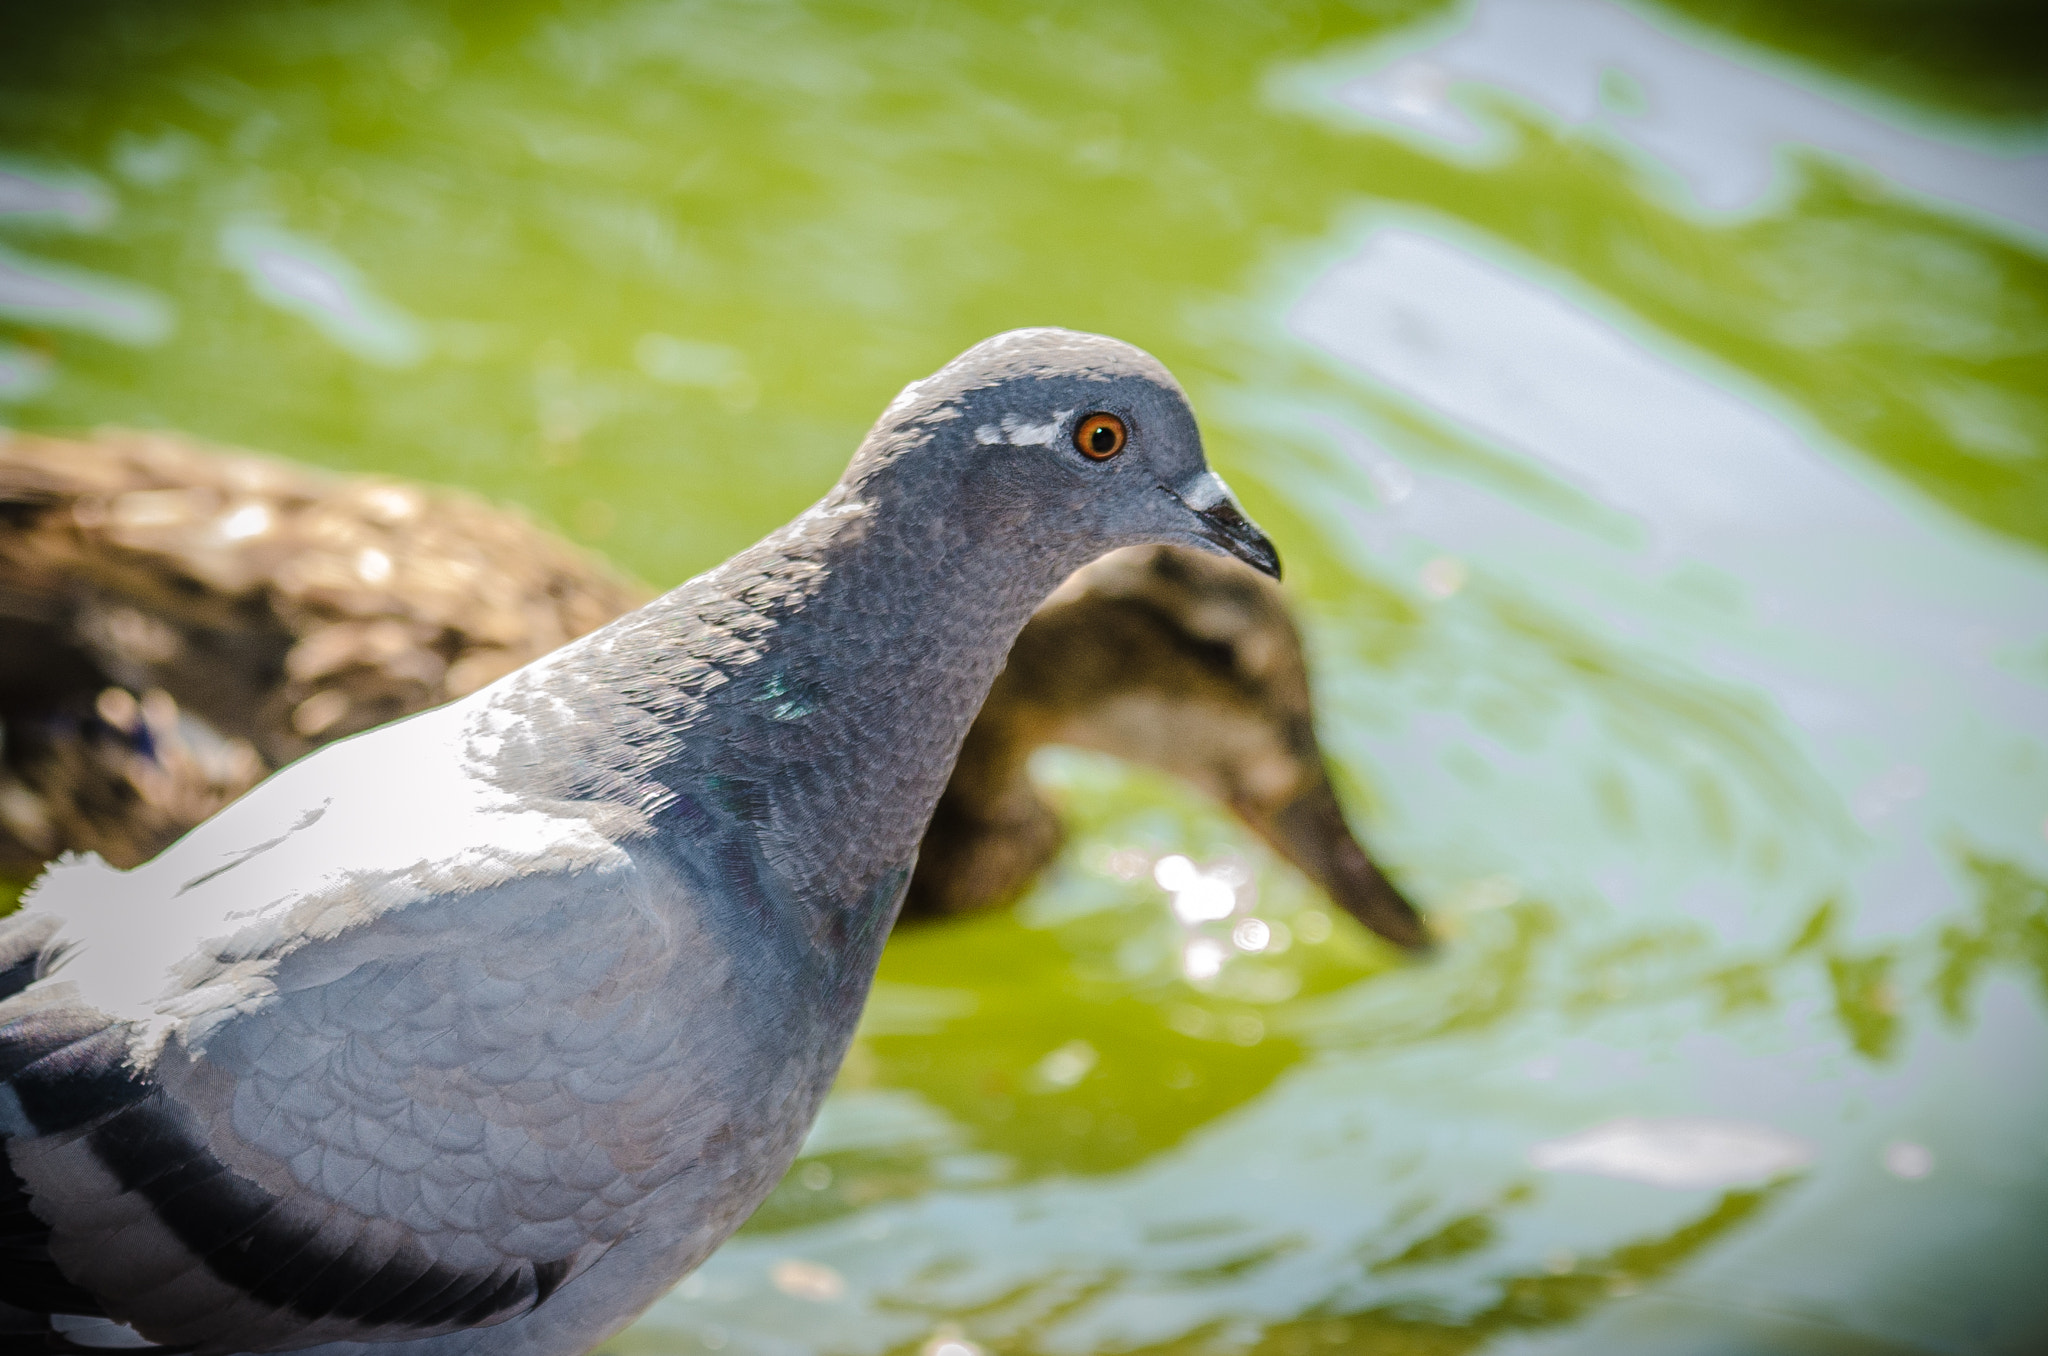 Photograph Taube oder Ente by Thomas TRENZ on 500px